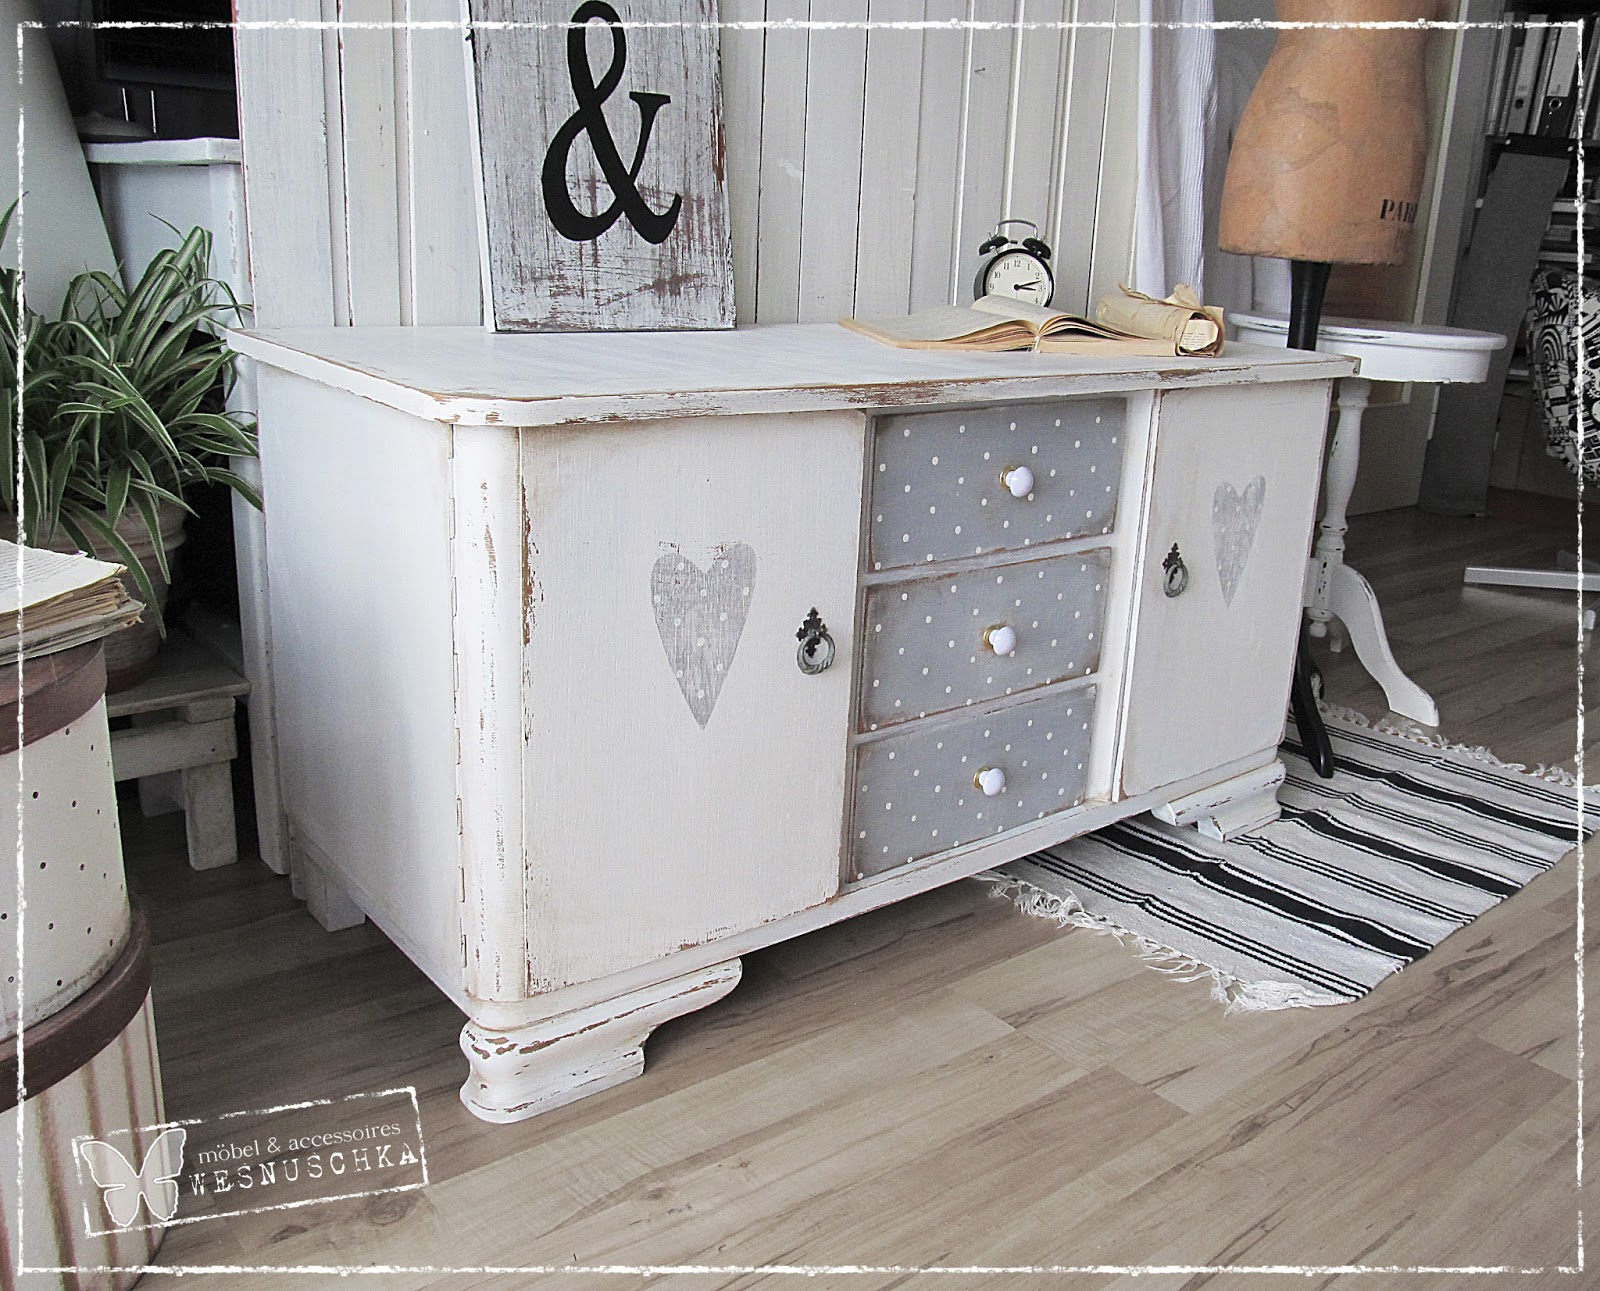 schrank shabby look good kommode reno schrank shabbylook vintage bunt xxcm wei with schrank. Black Bedroom Furniture Sets. Home Design Ideas